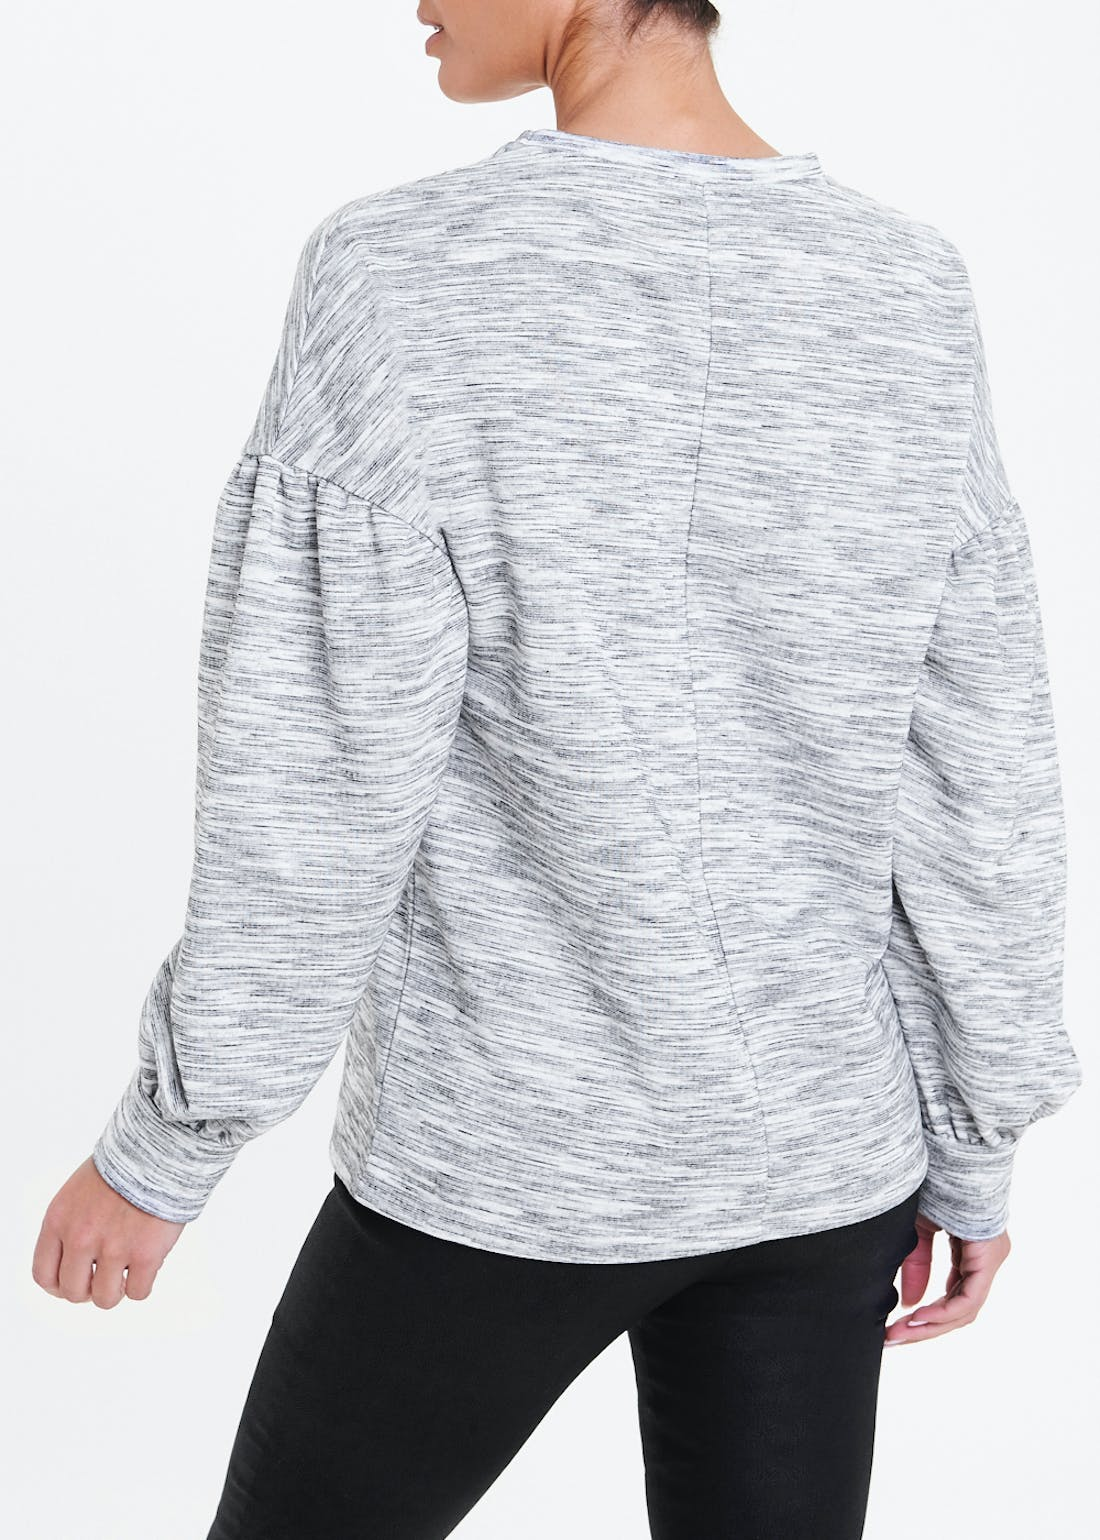 Space Dye Puff Sleeve Sweatshirt